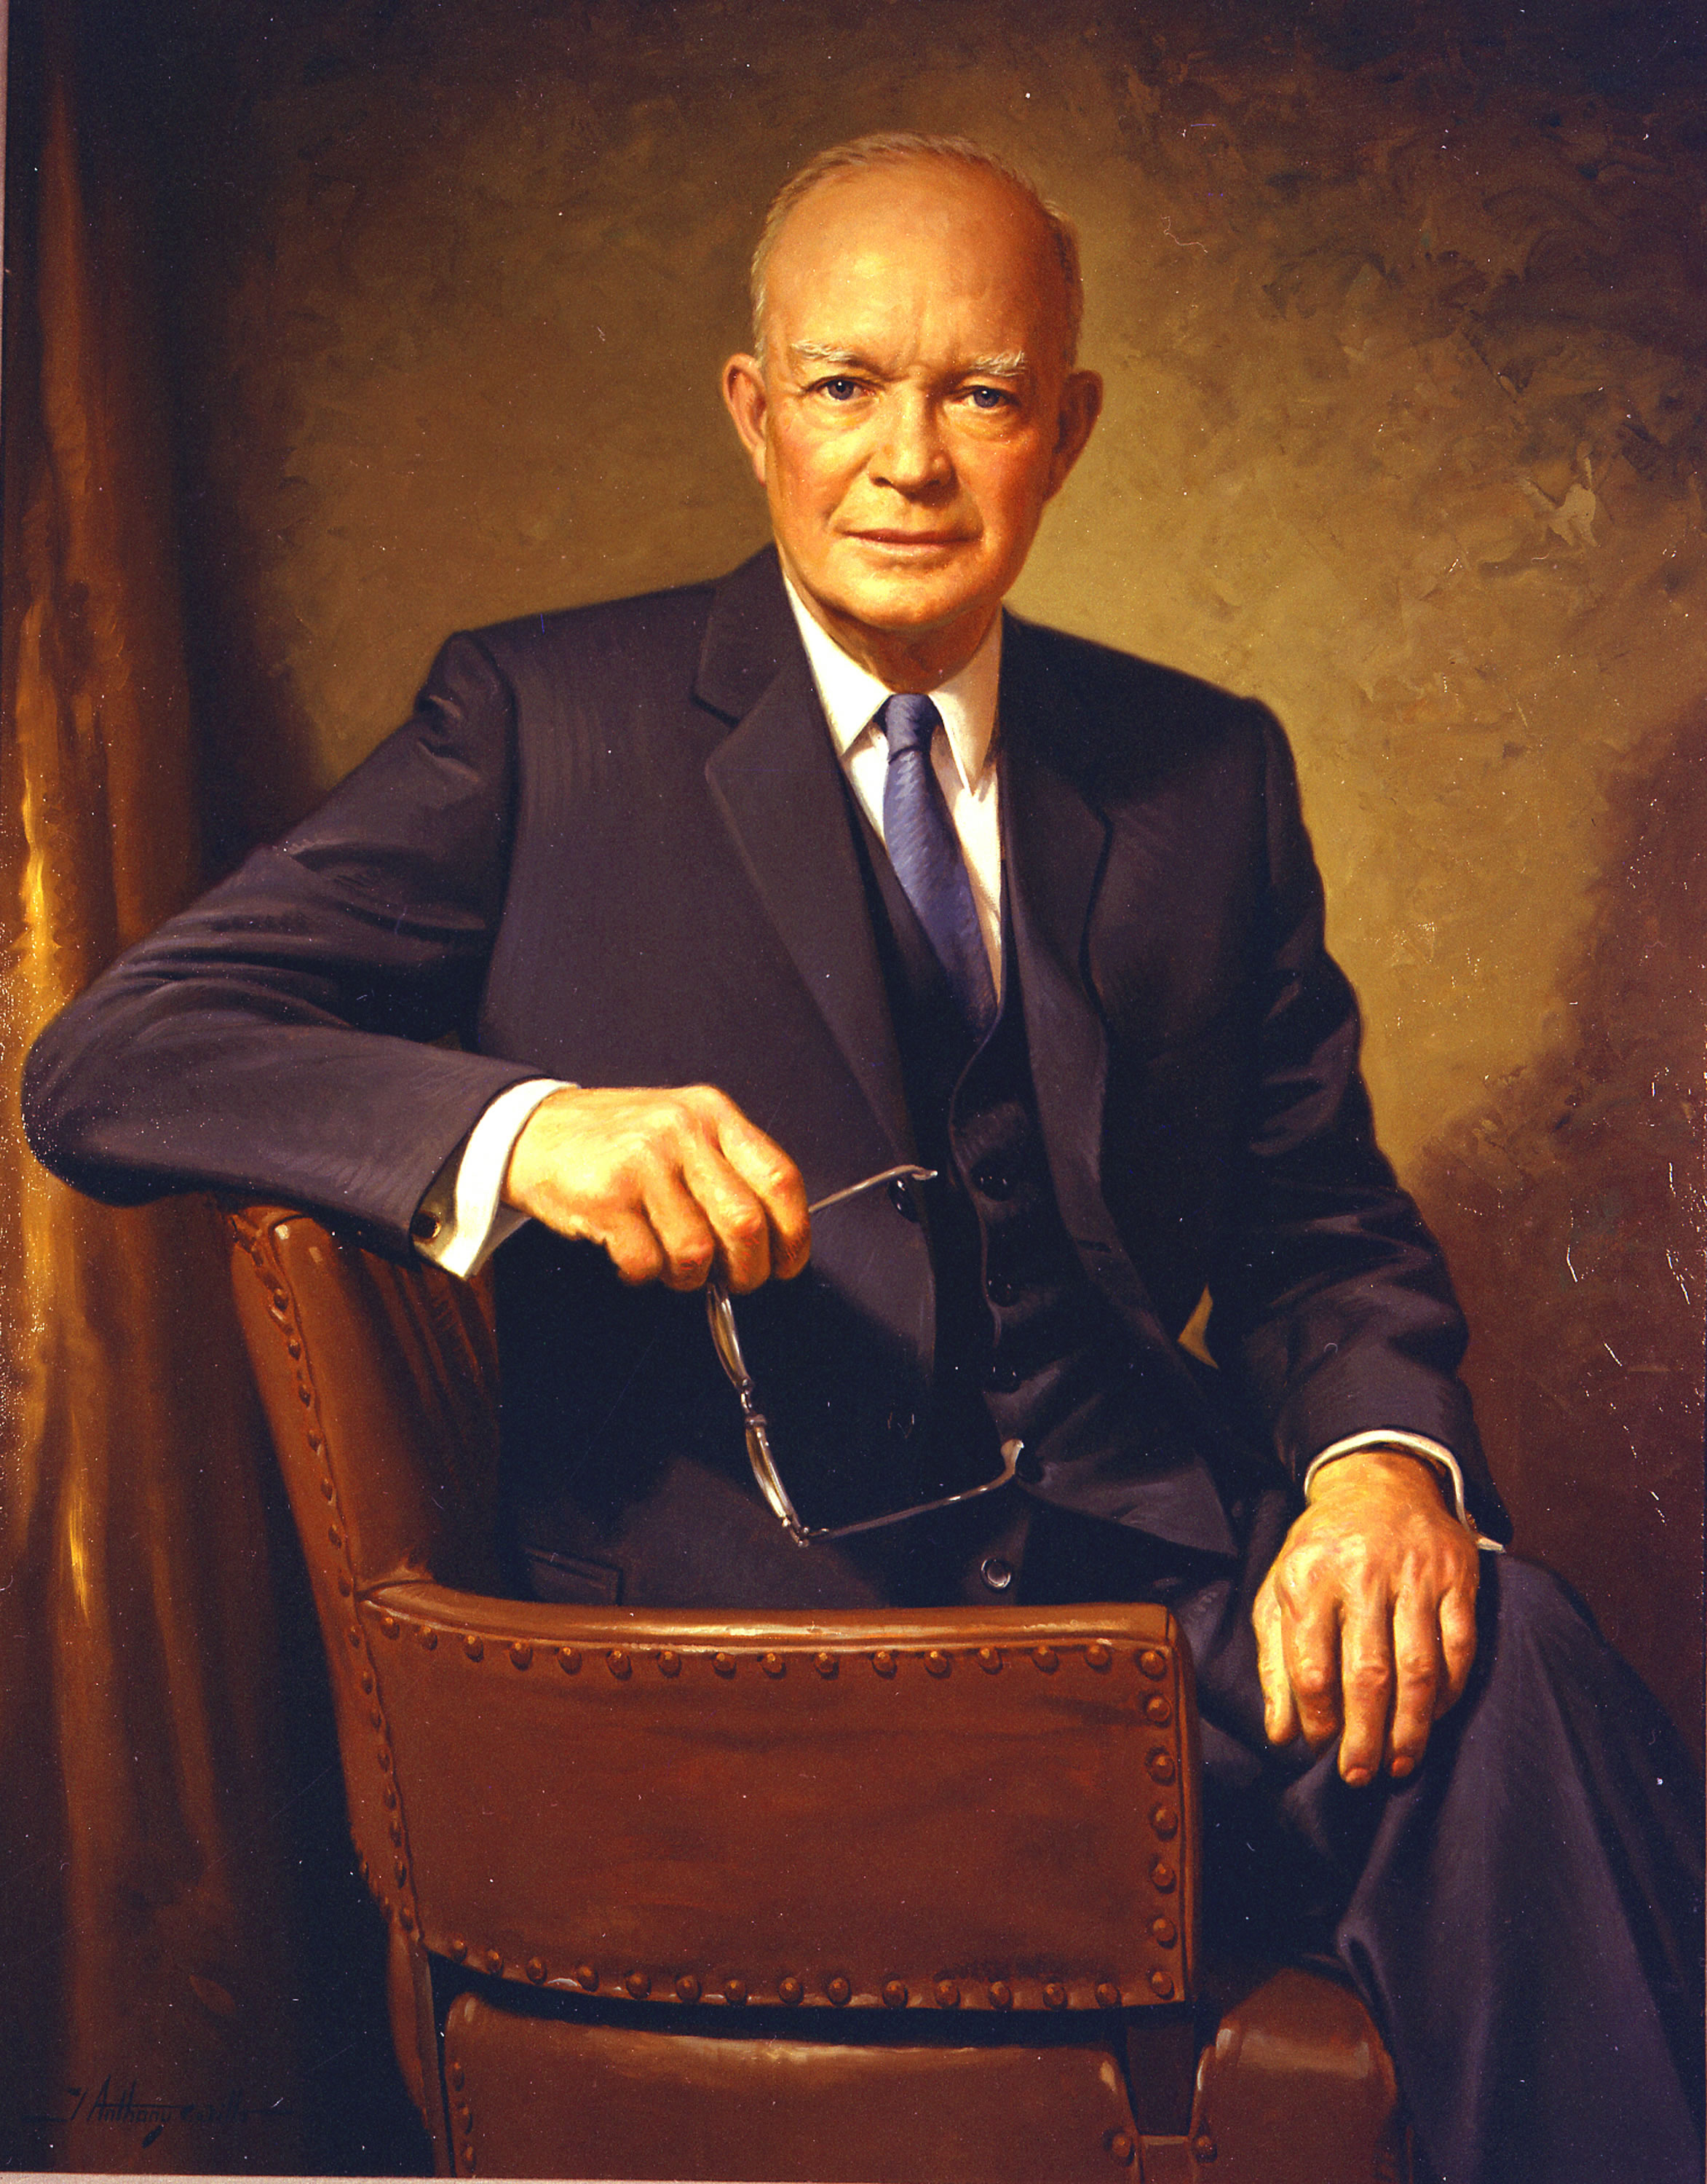 http://thenewliberator.files.wordpress.com/2009/03/dwight_d_eisenhower.jpg